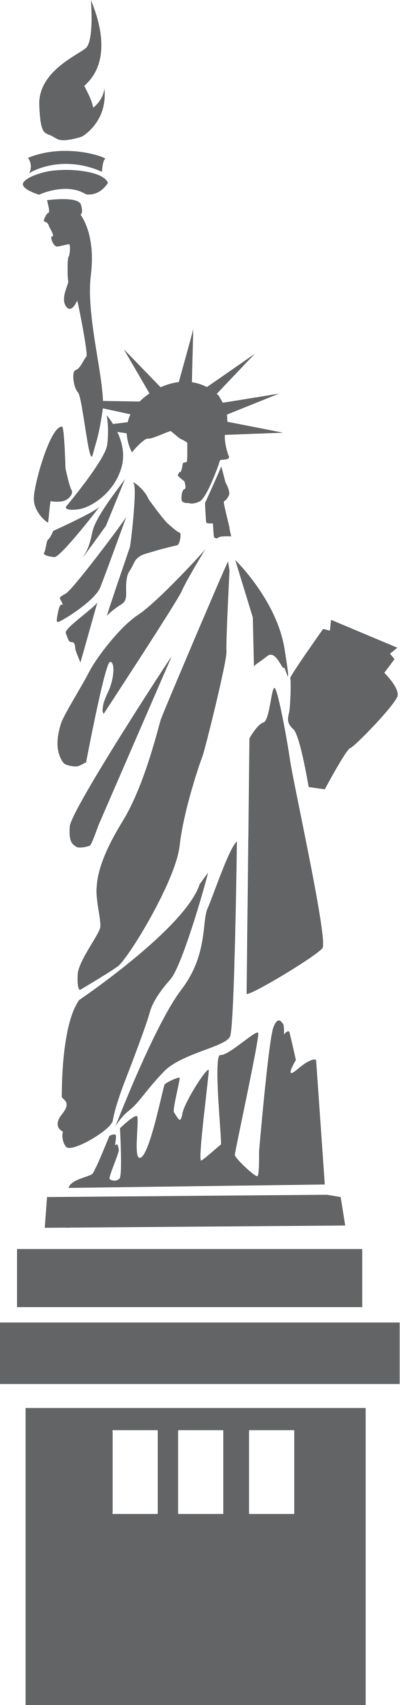 Illustration of the Statue of Liberty with a transparent background.